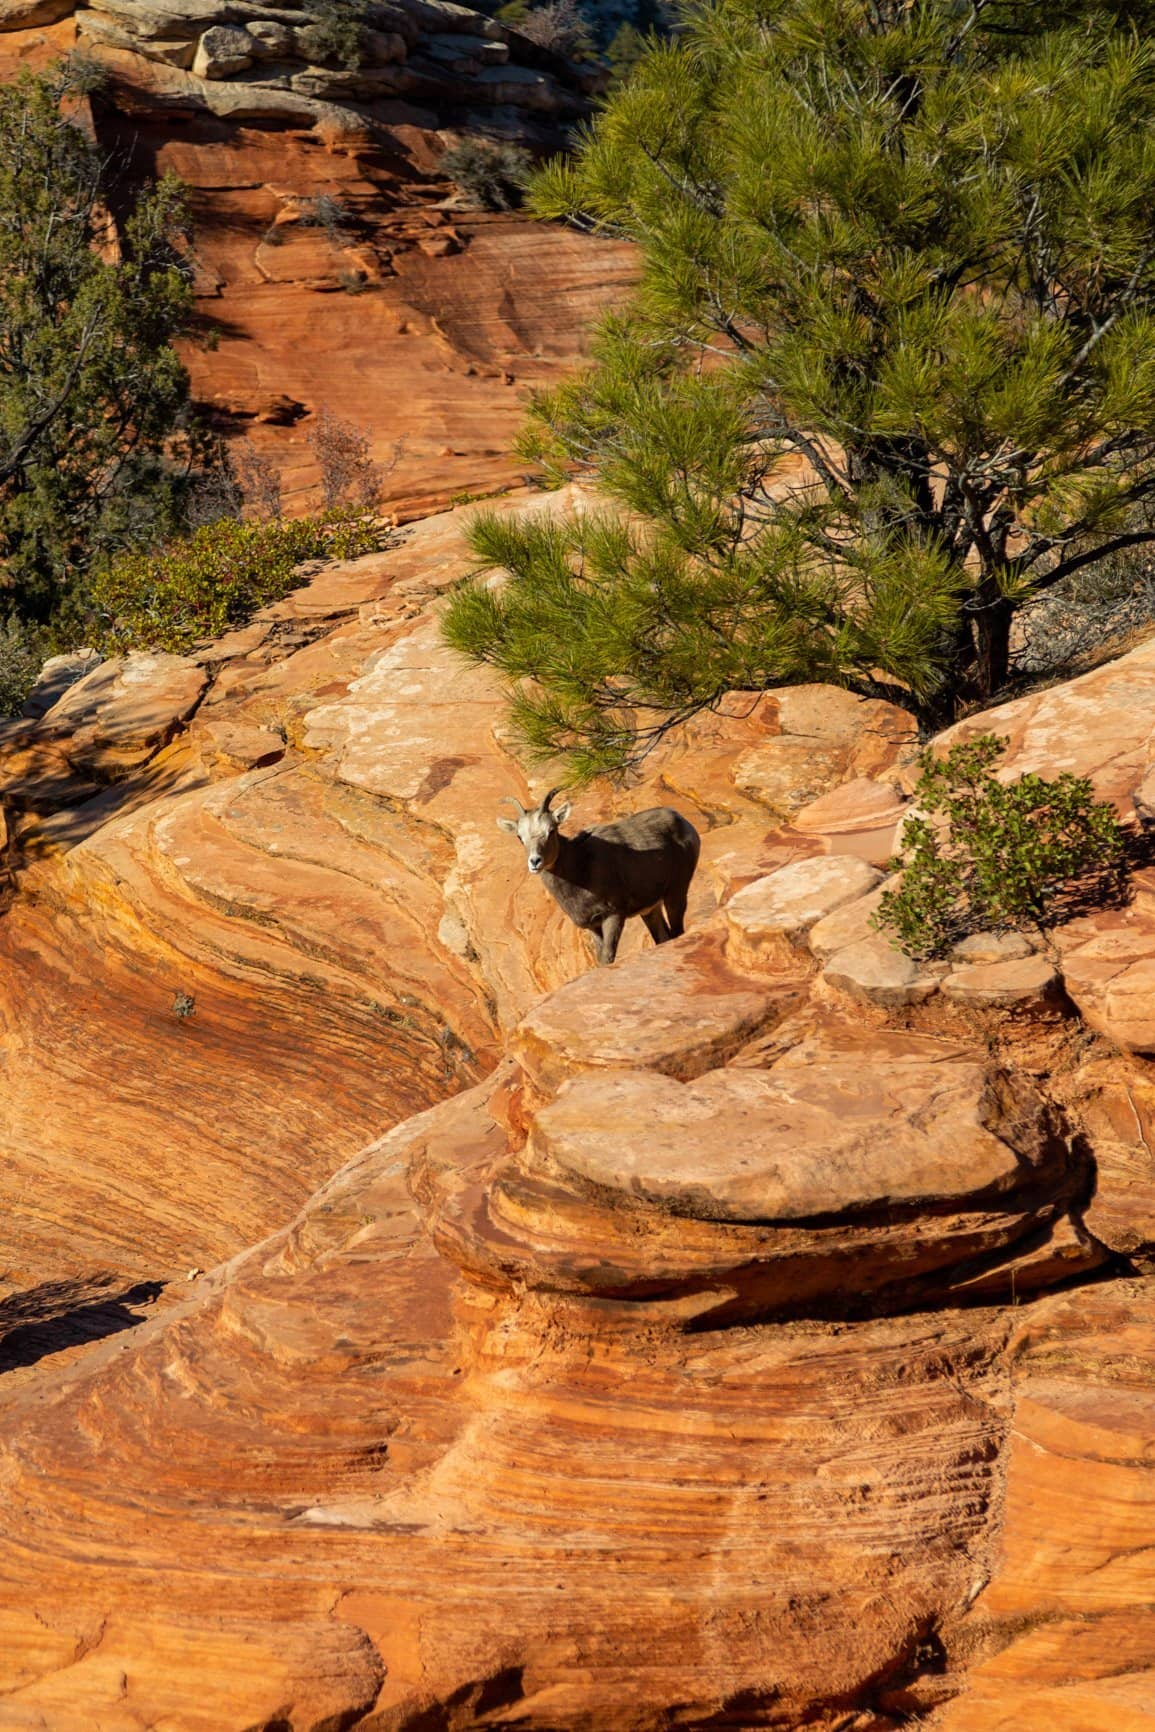 sheep spotting in Zion National Park. Plan your wedding day in a national park like Zion to see wildlife